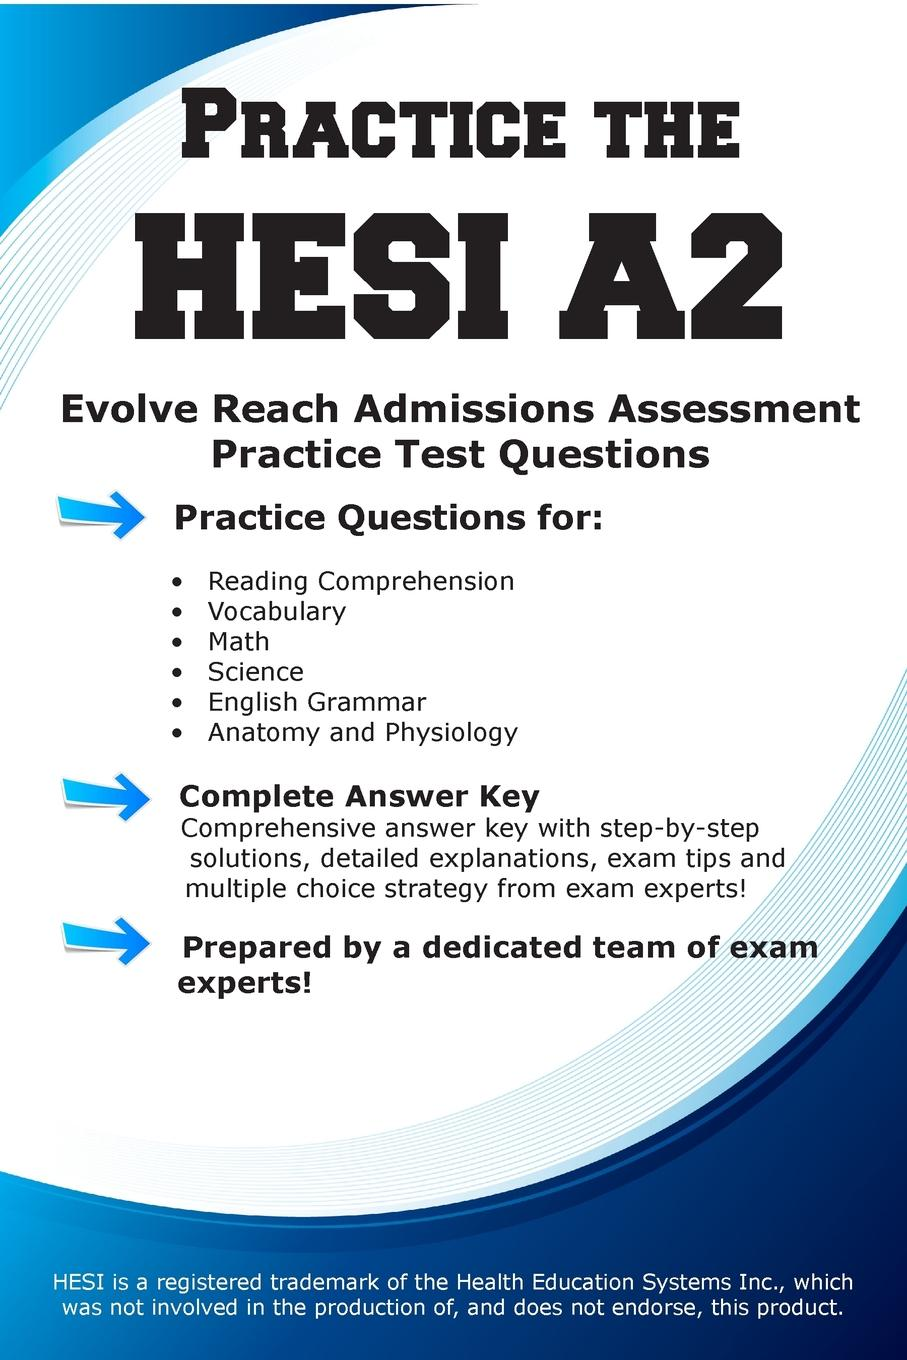 Practice The Hesi A2 Practice Test Questions For Hesi Exam